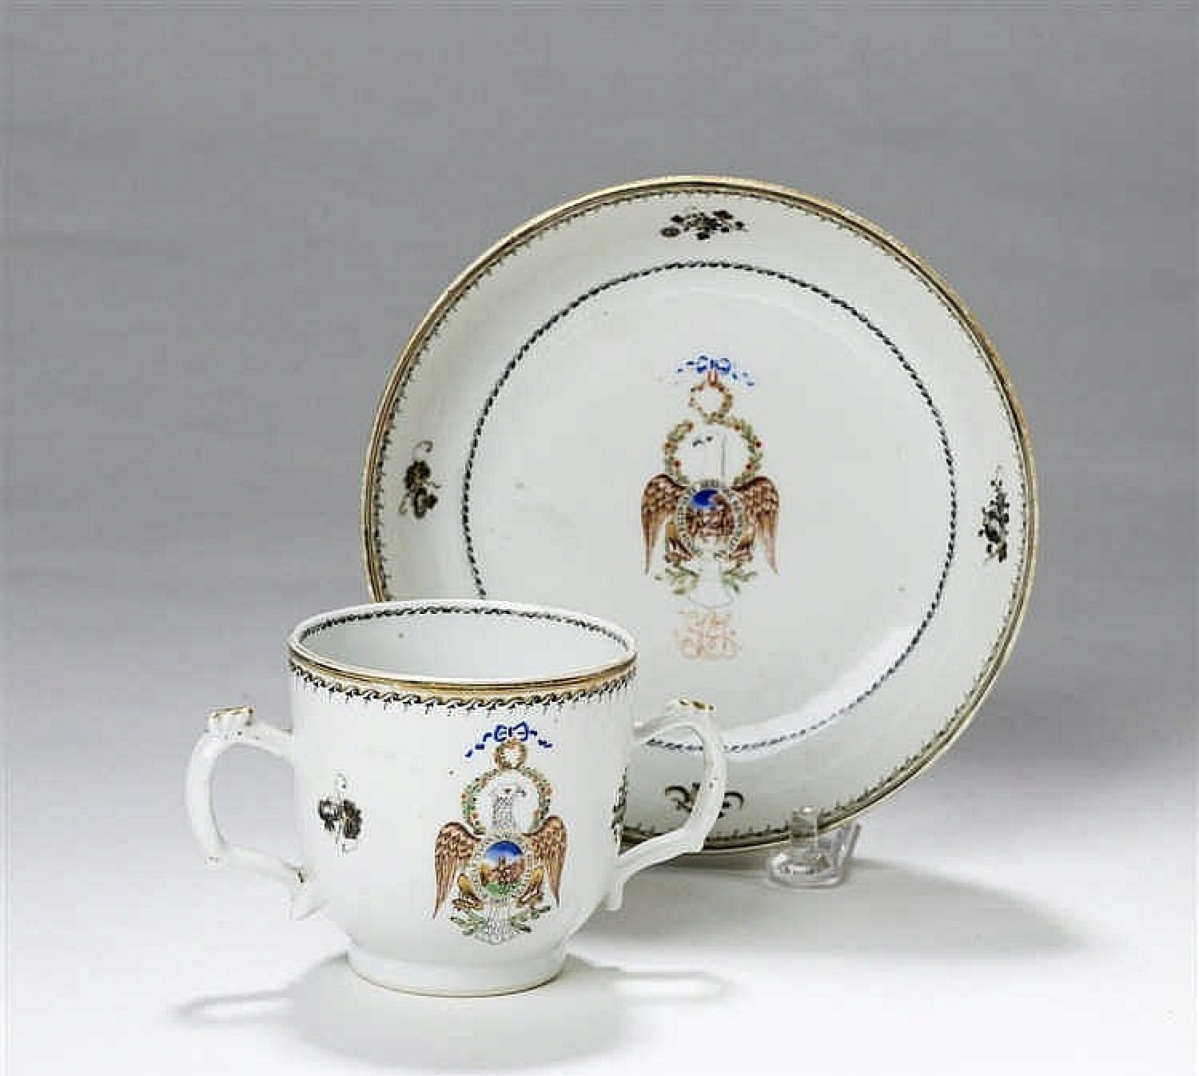 At $51,600, this two-handled cup and saucer with the insignia of the Order of the Cincinnati was the highest priced item in the sale. It was part of a tea set that had belonged to, and had the initials of Samuel Shaw, one of the founders of the society. The form, according to the buyers, was quite rare.